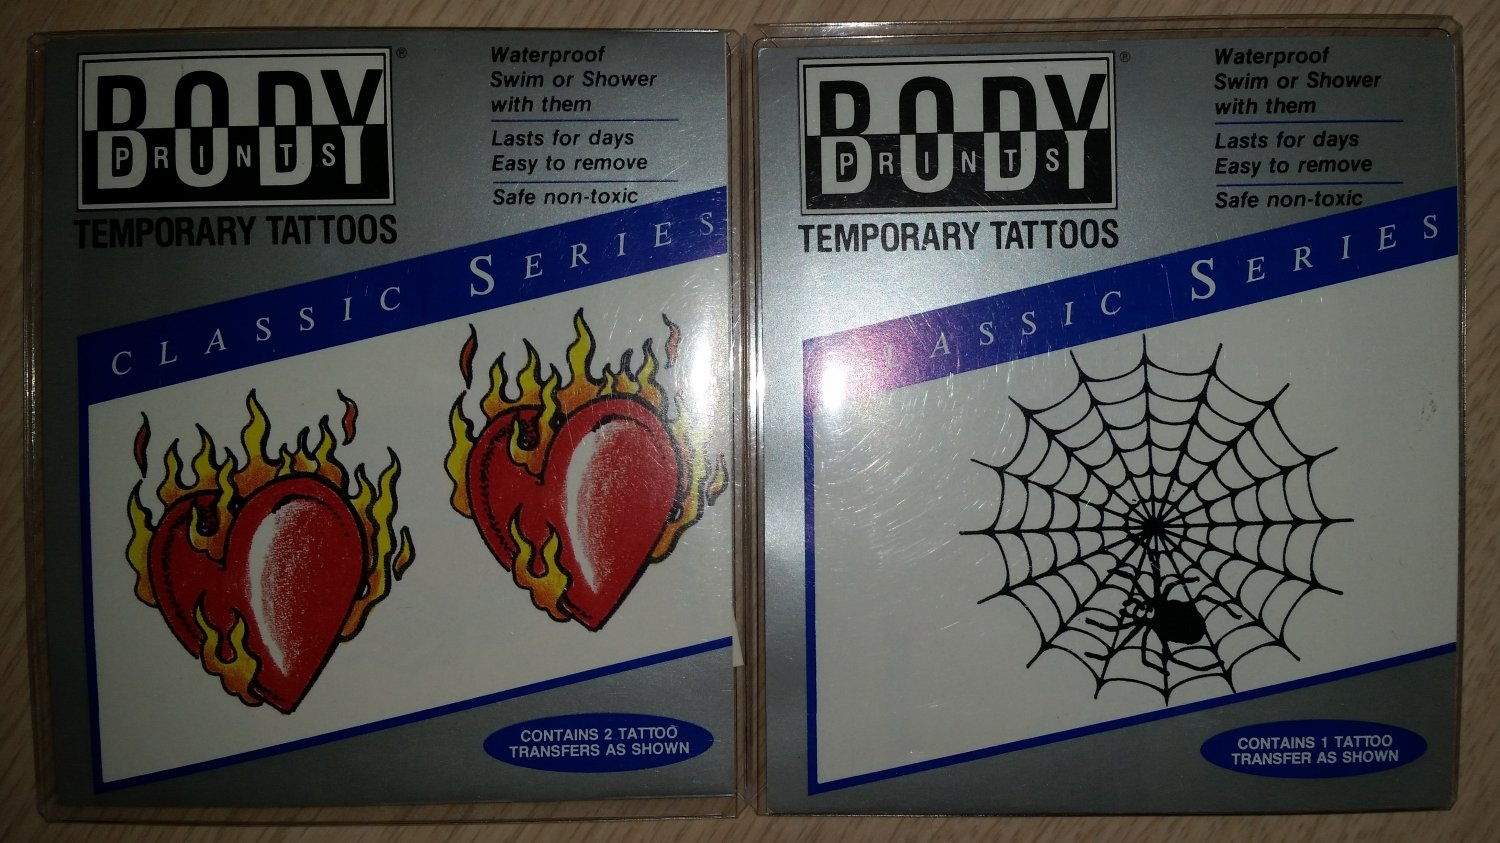 Body Prints London Temporary Tattoos-HEARTS/WEB-Waterproof-Swim or Shower w/ them-Lot of 2!